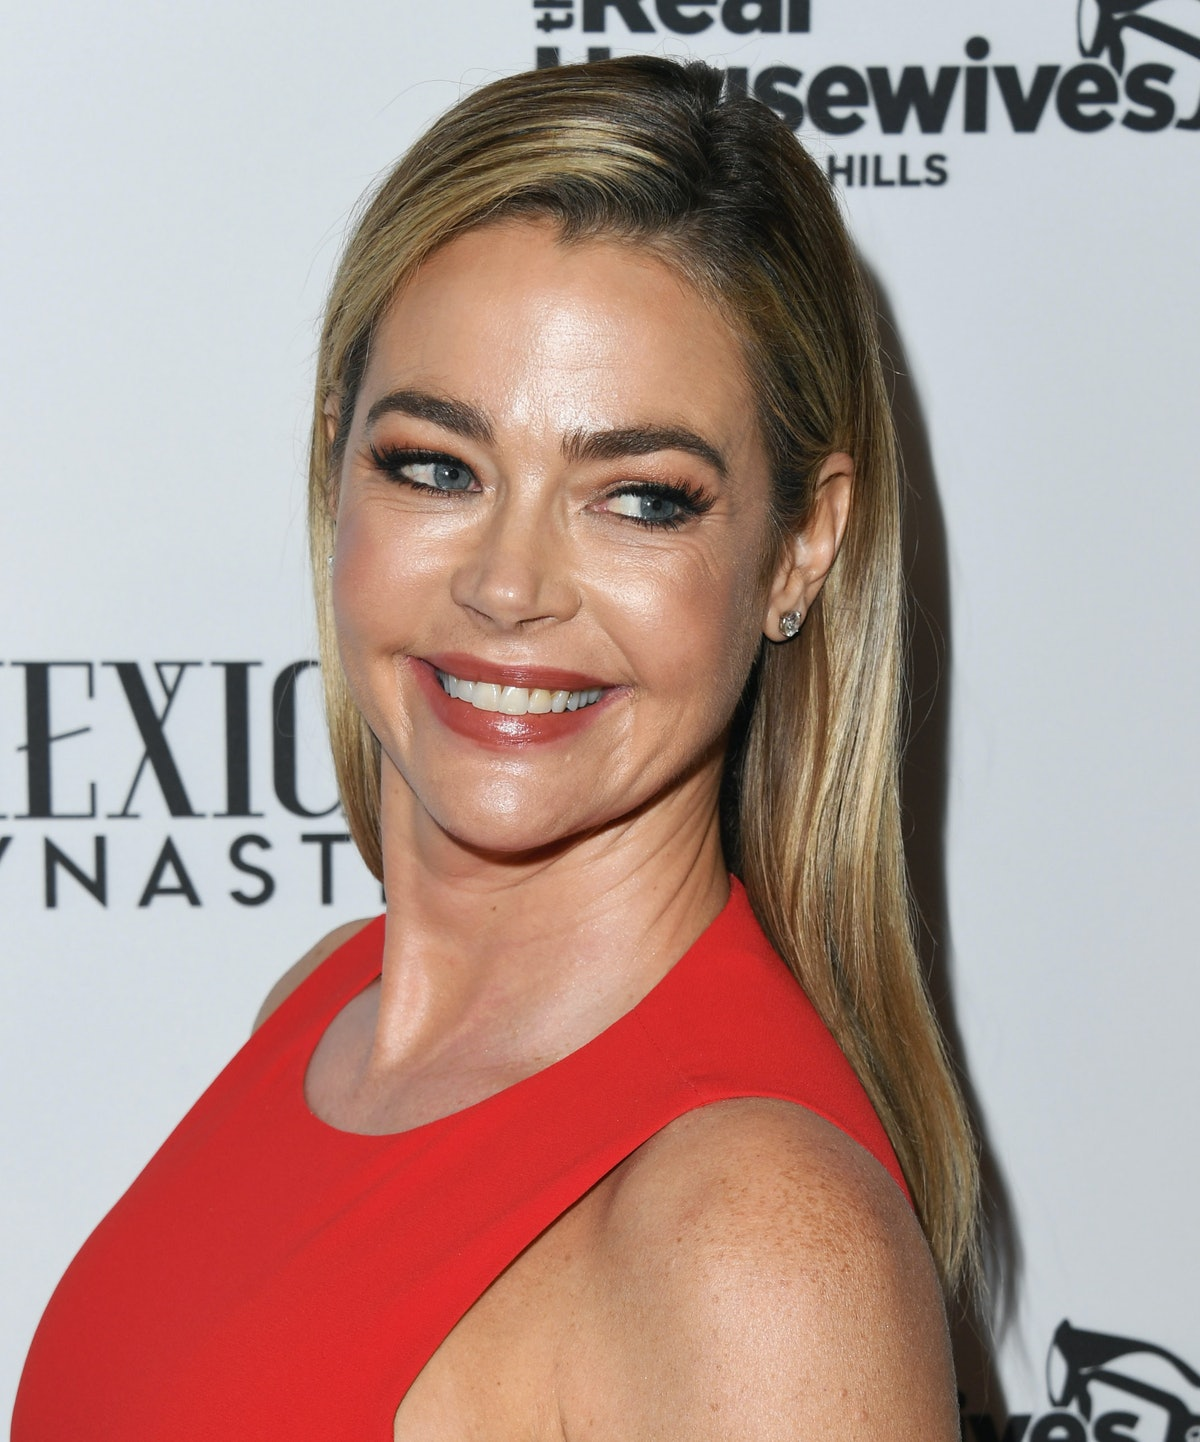 Denise Richards & Patrick Muldoon Relationship Timeline Shows The 'RHOBH' Is All About Good Vibes